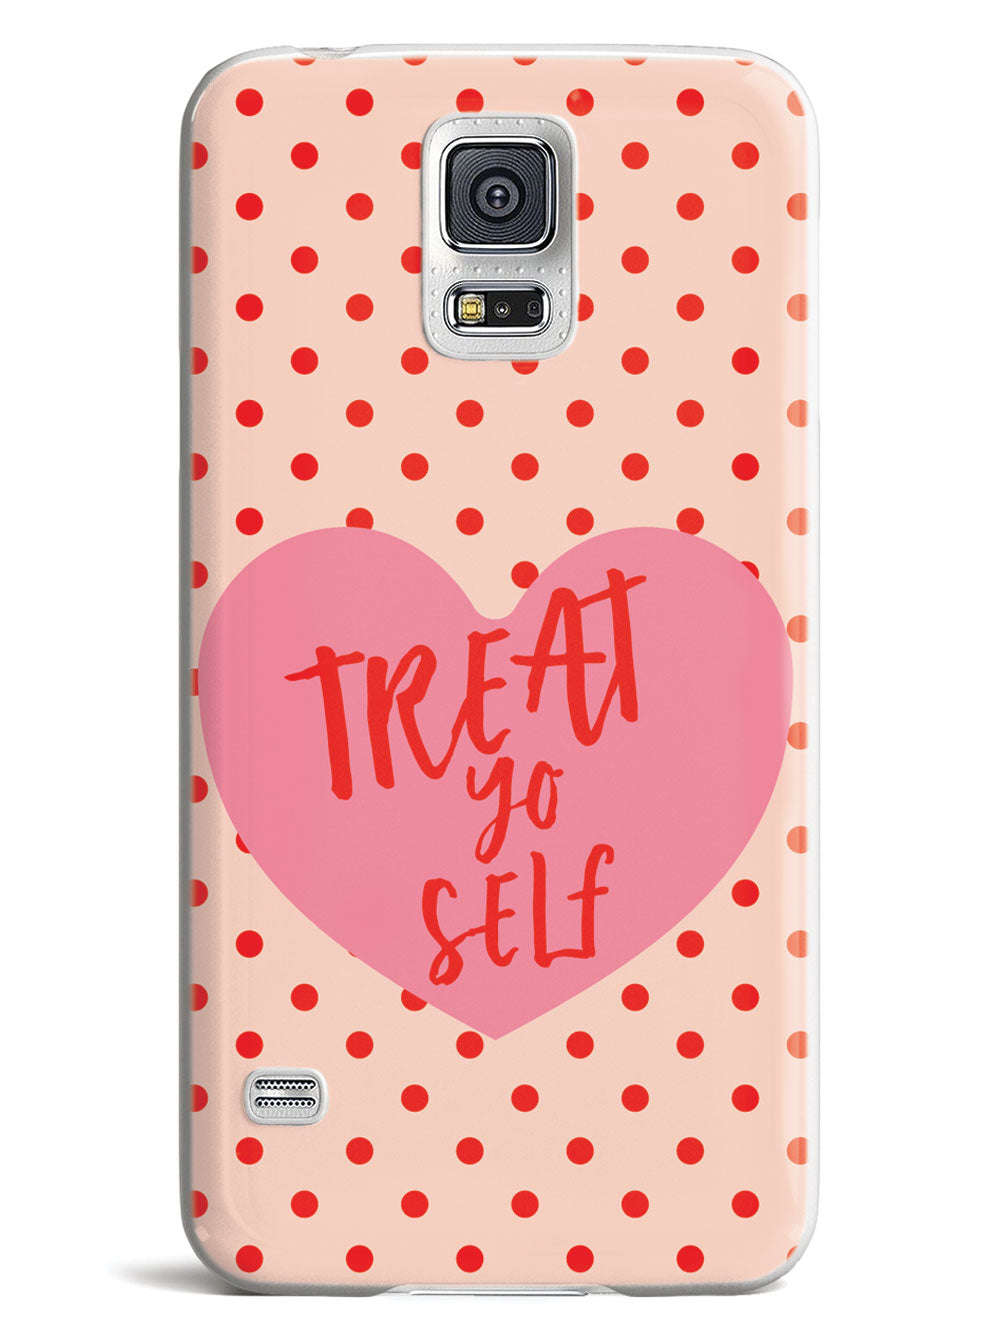 Treat Yo Self - White Case